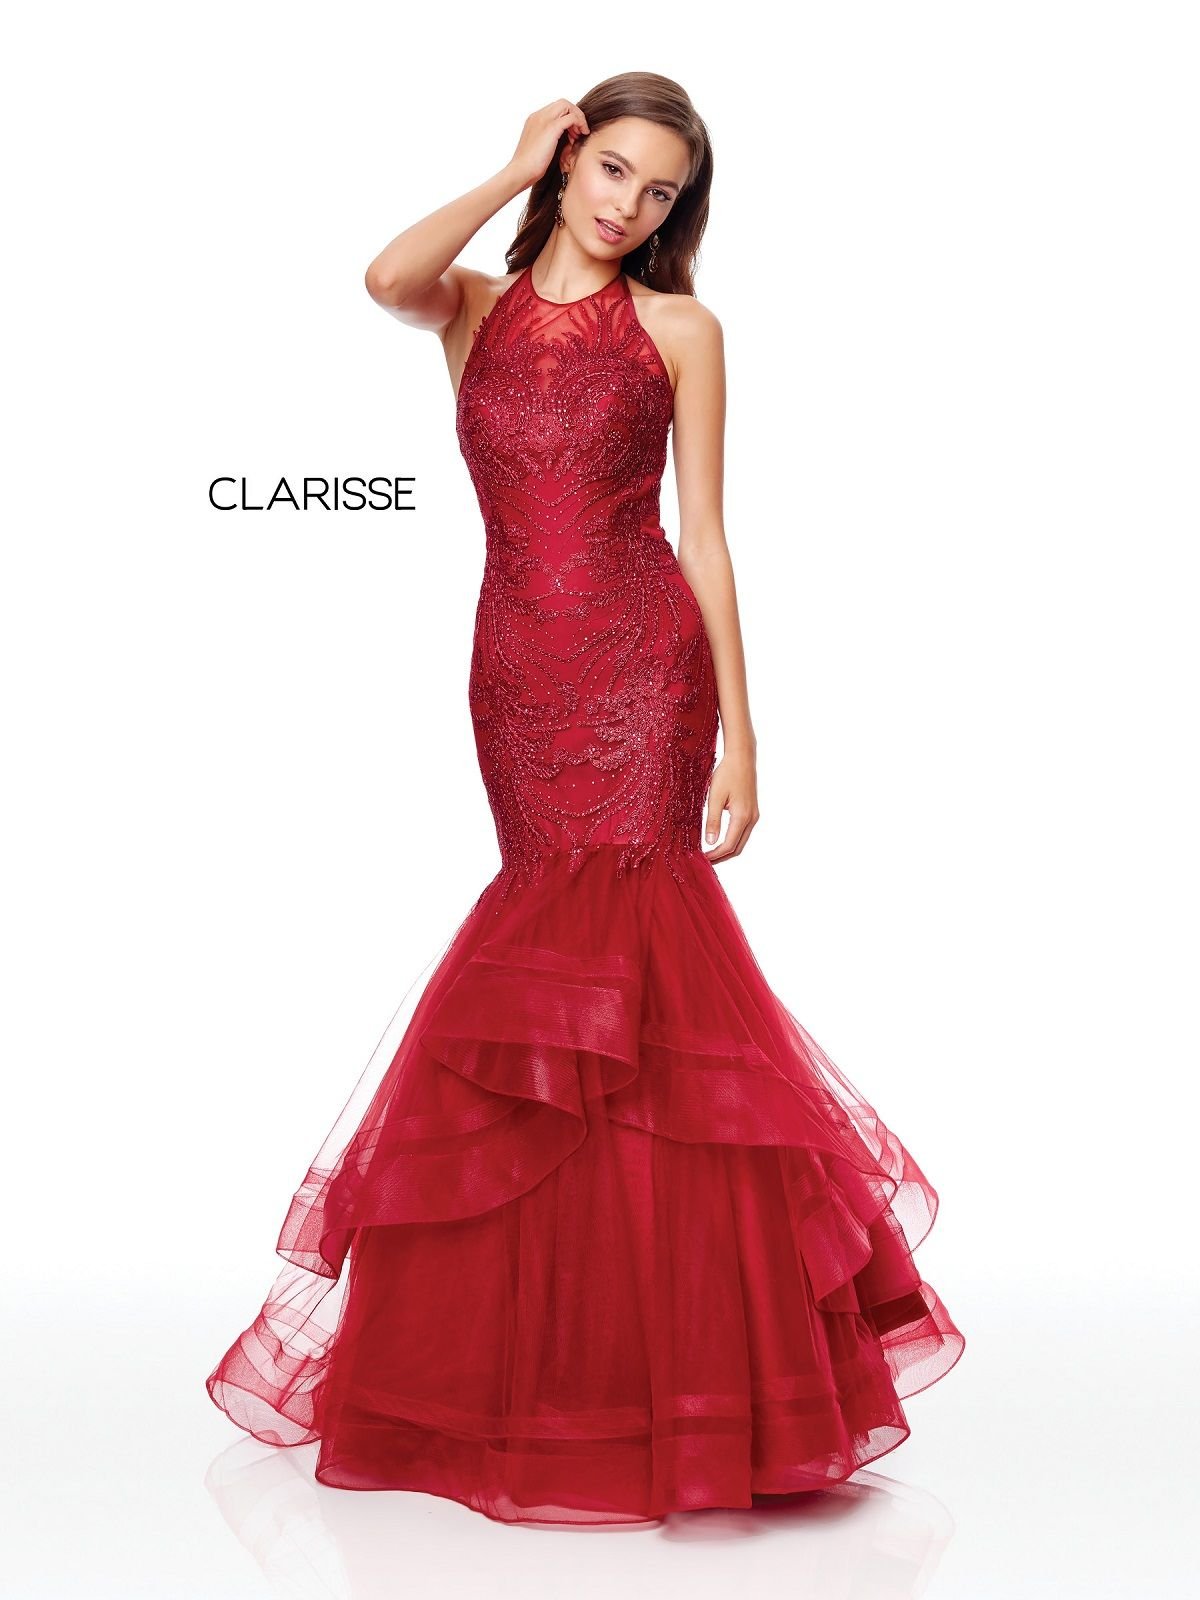 76d8b16735b Clarisse Couture Dress 5016 Ruffled Mermaid Gown